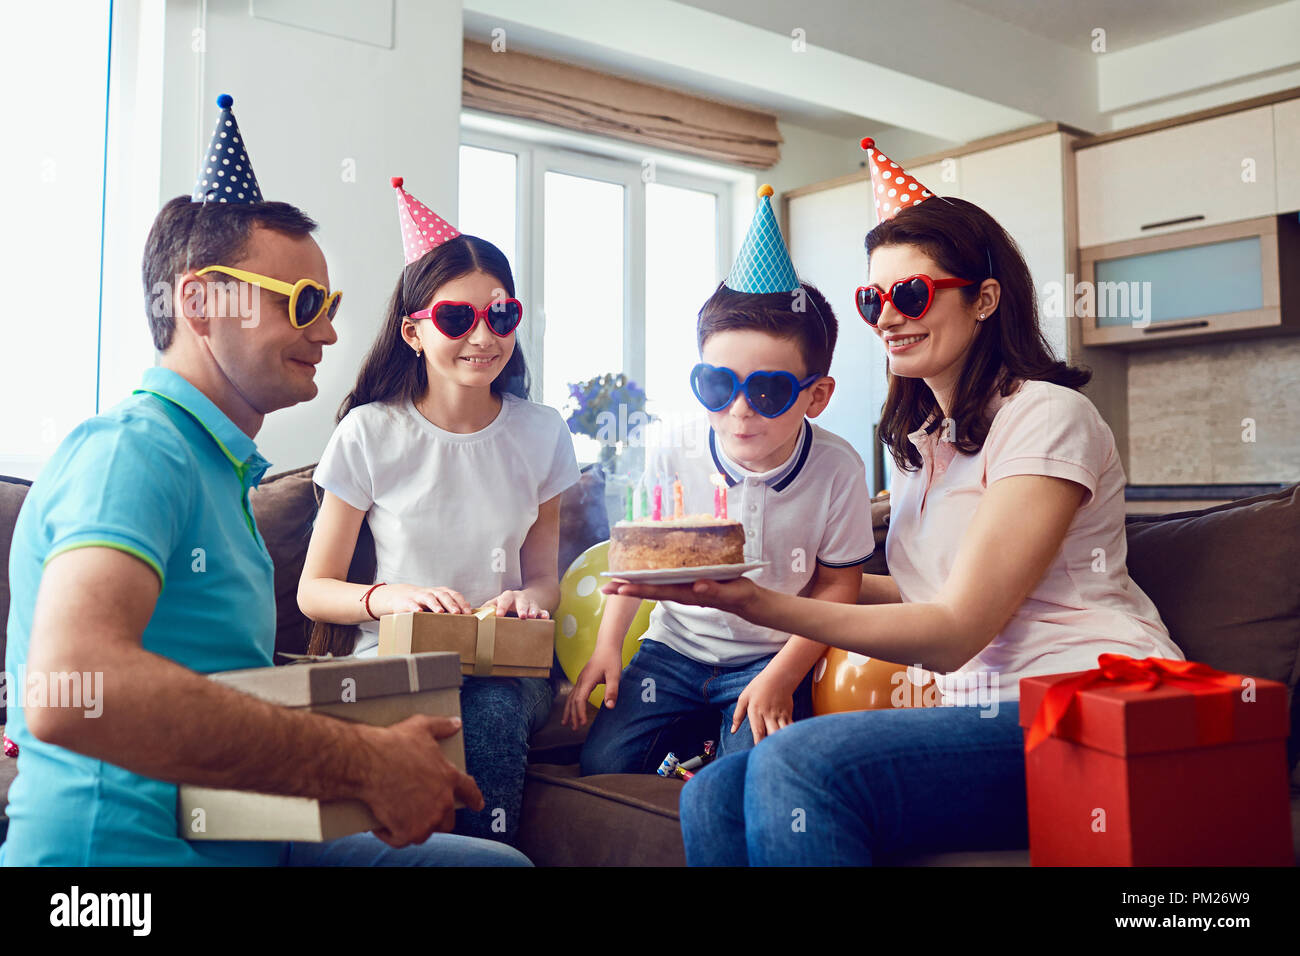 Happy Family celebrates birthday with a birthday cake - Stock Image